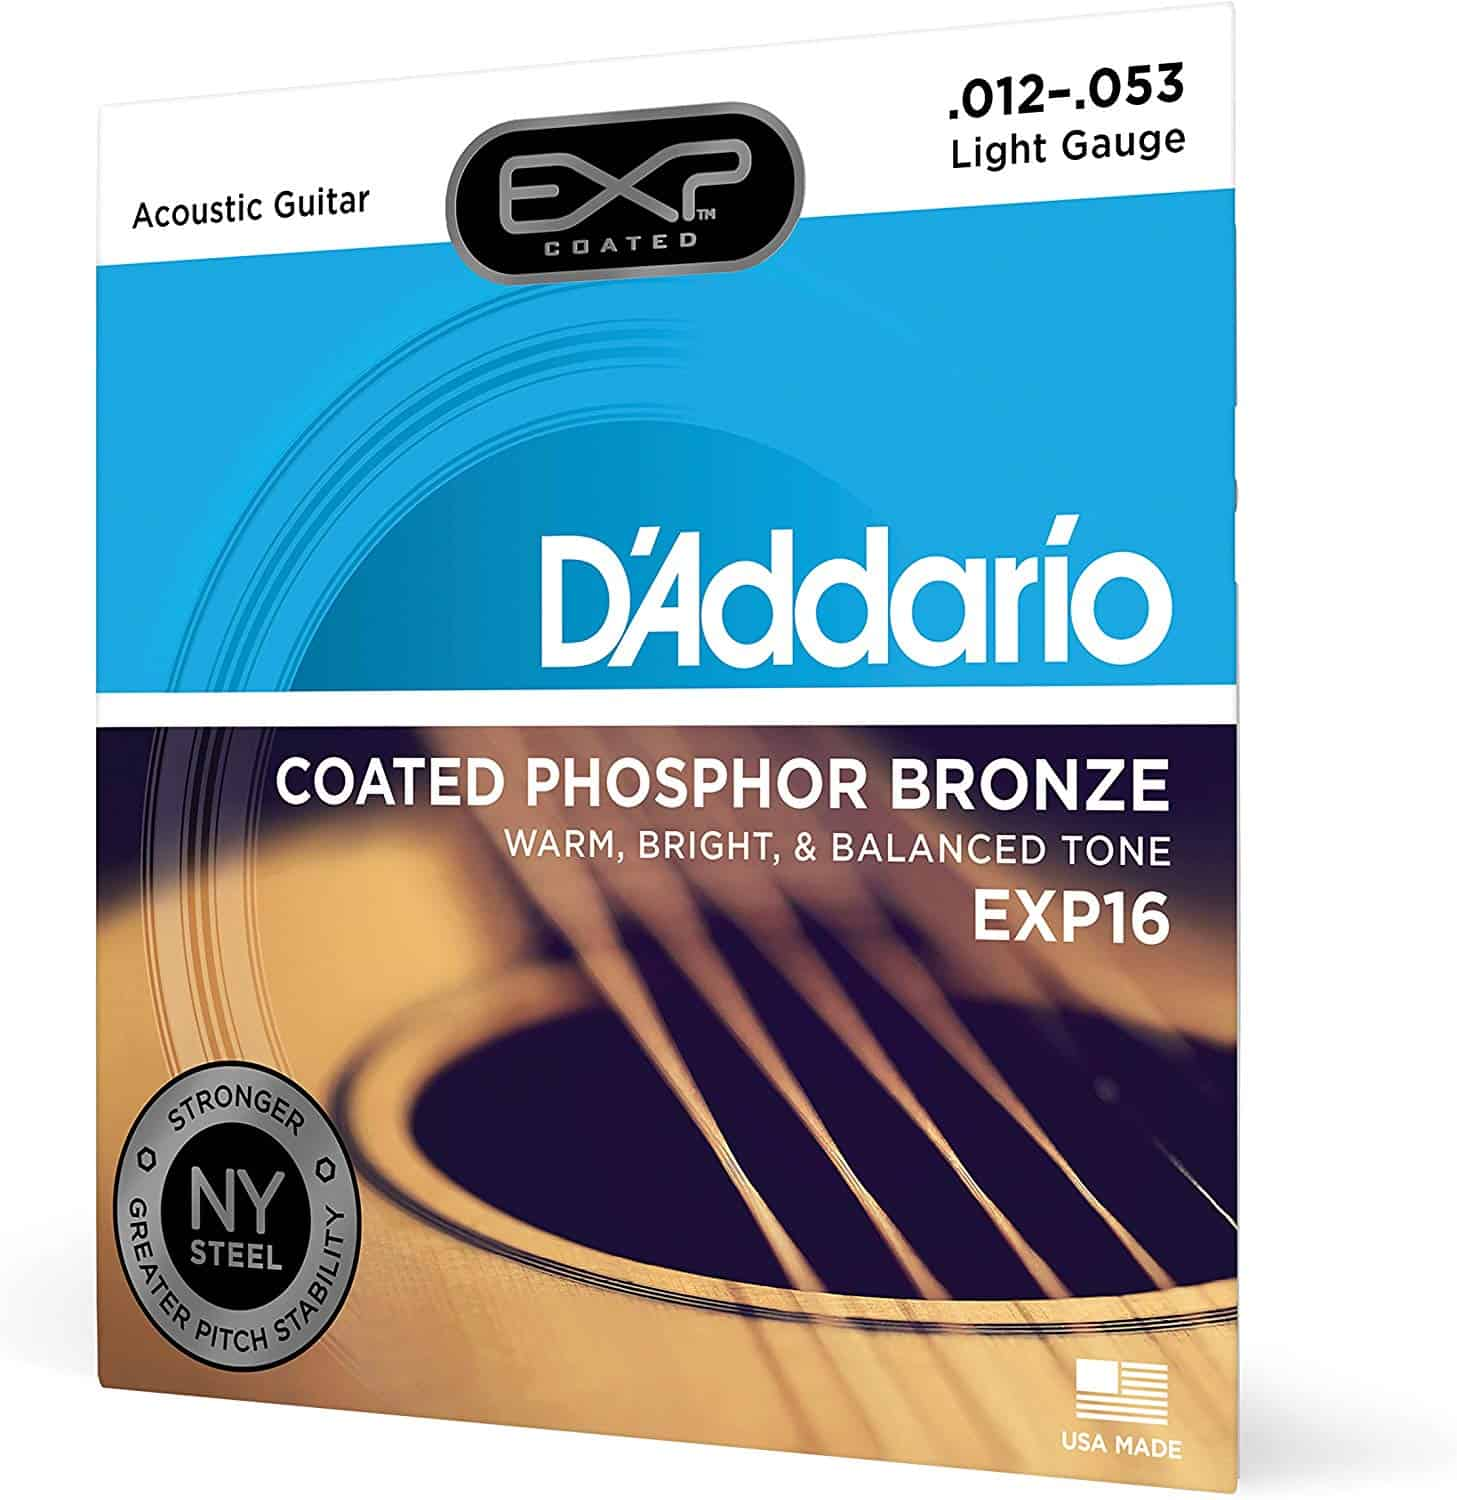 D'Addario extended life coated strings.